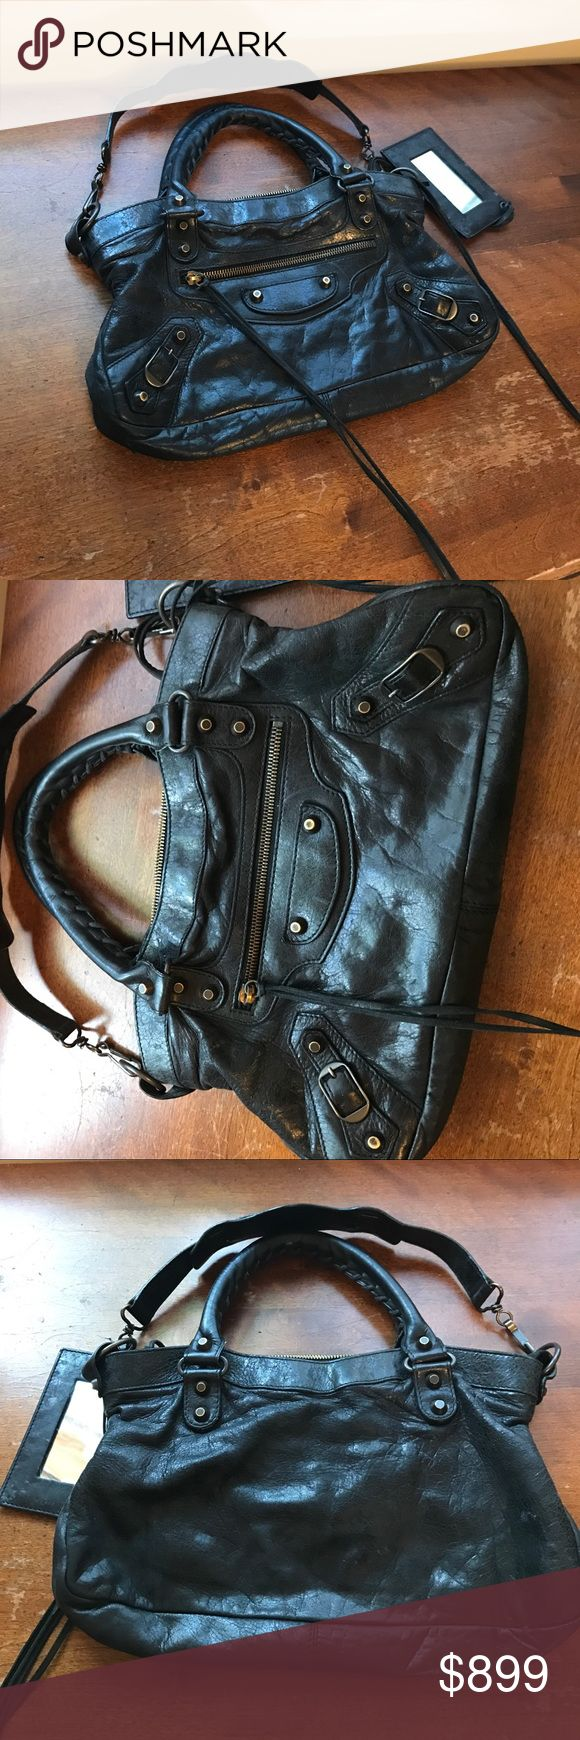 Balenciaga Classic City bag Gently worn. Authentic purchased at Barneys. No rips or tears. Please ask for more pictures/info! Balenciaga Bags Shoulder Bags